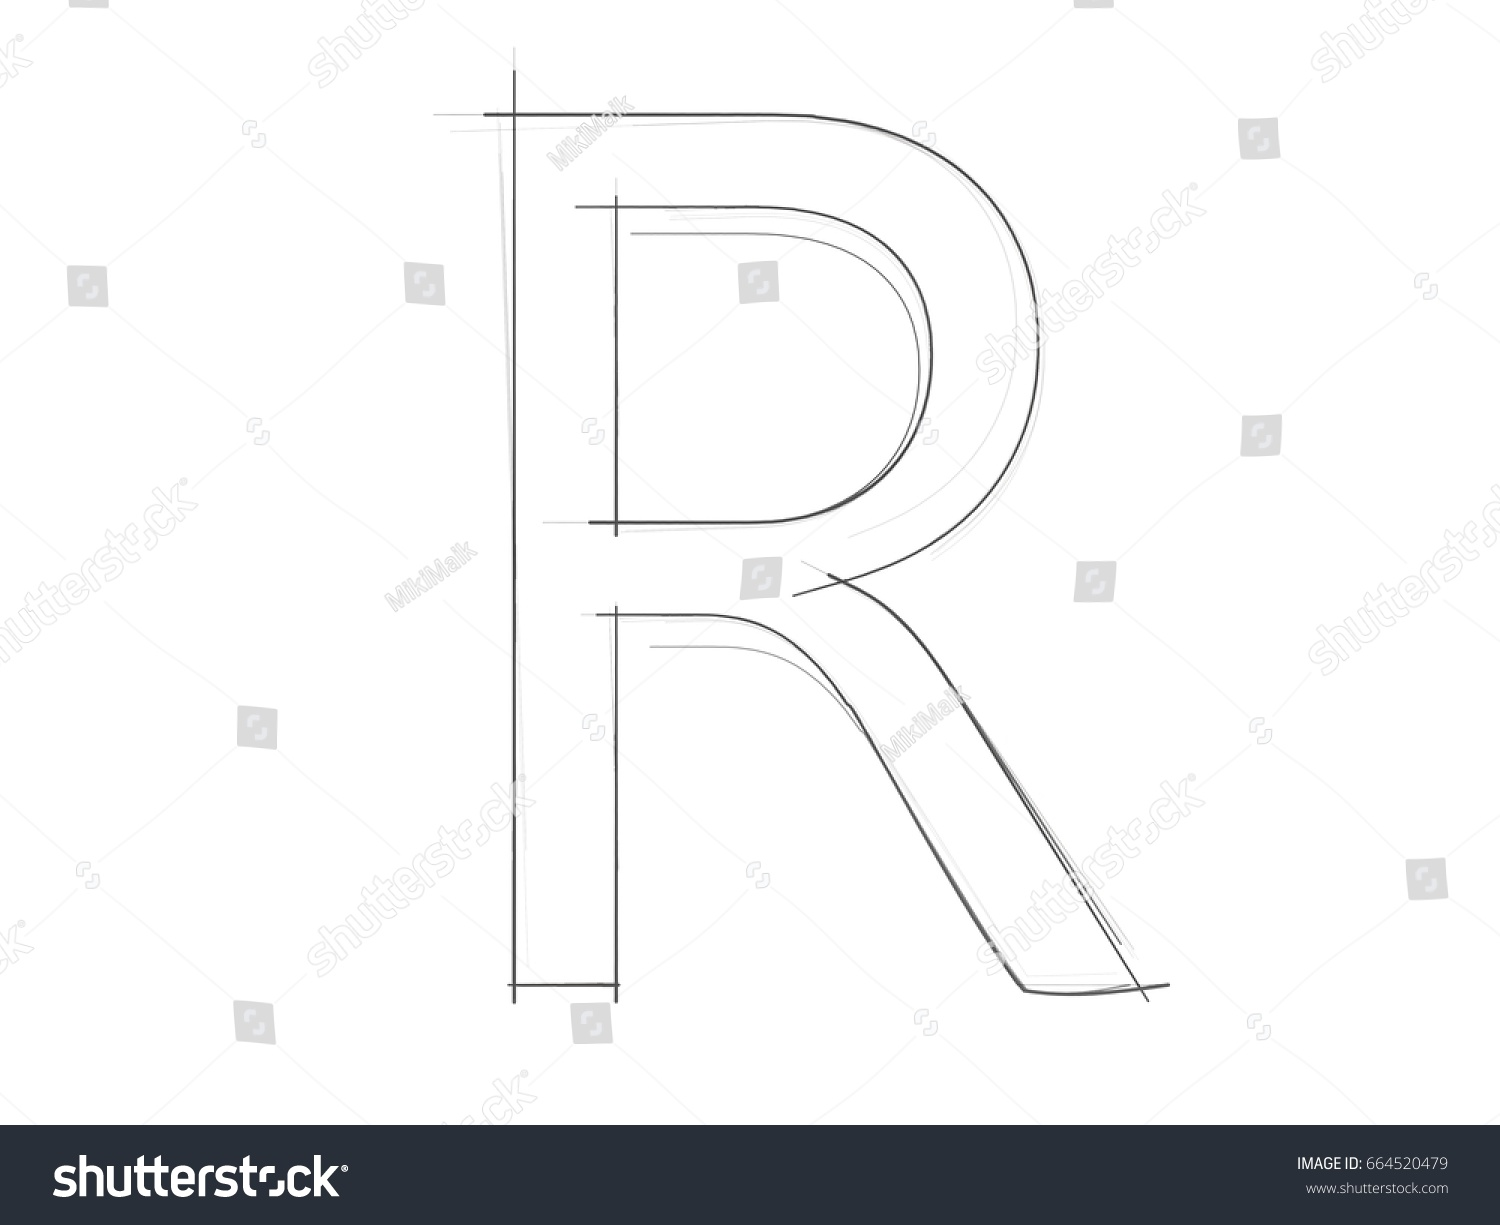 Font pencil sketch hand drawn alphabet drawing white background isolated r capital letters